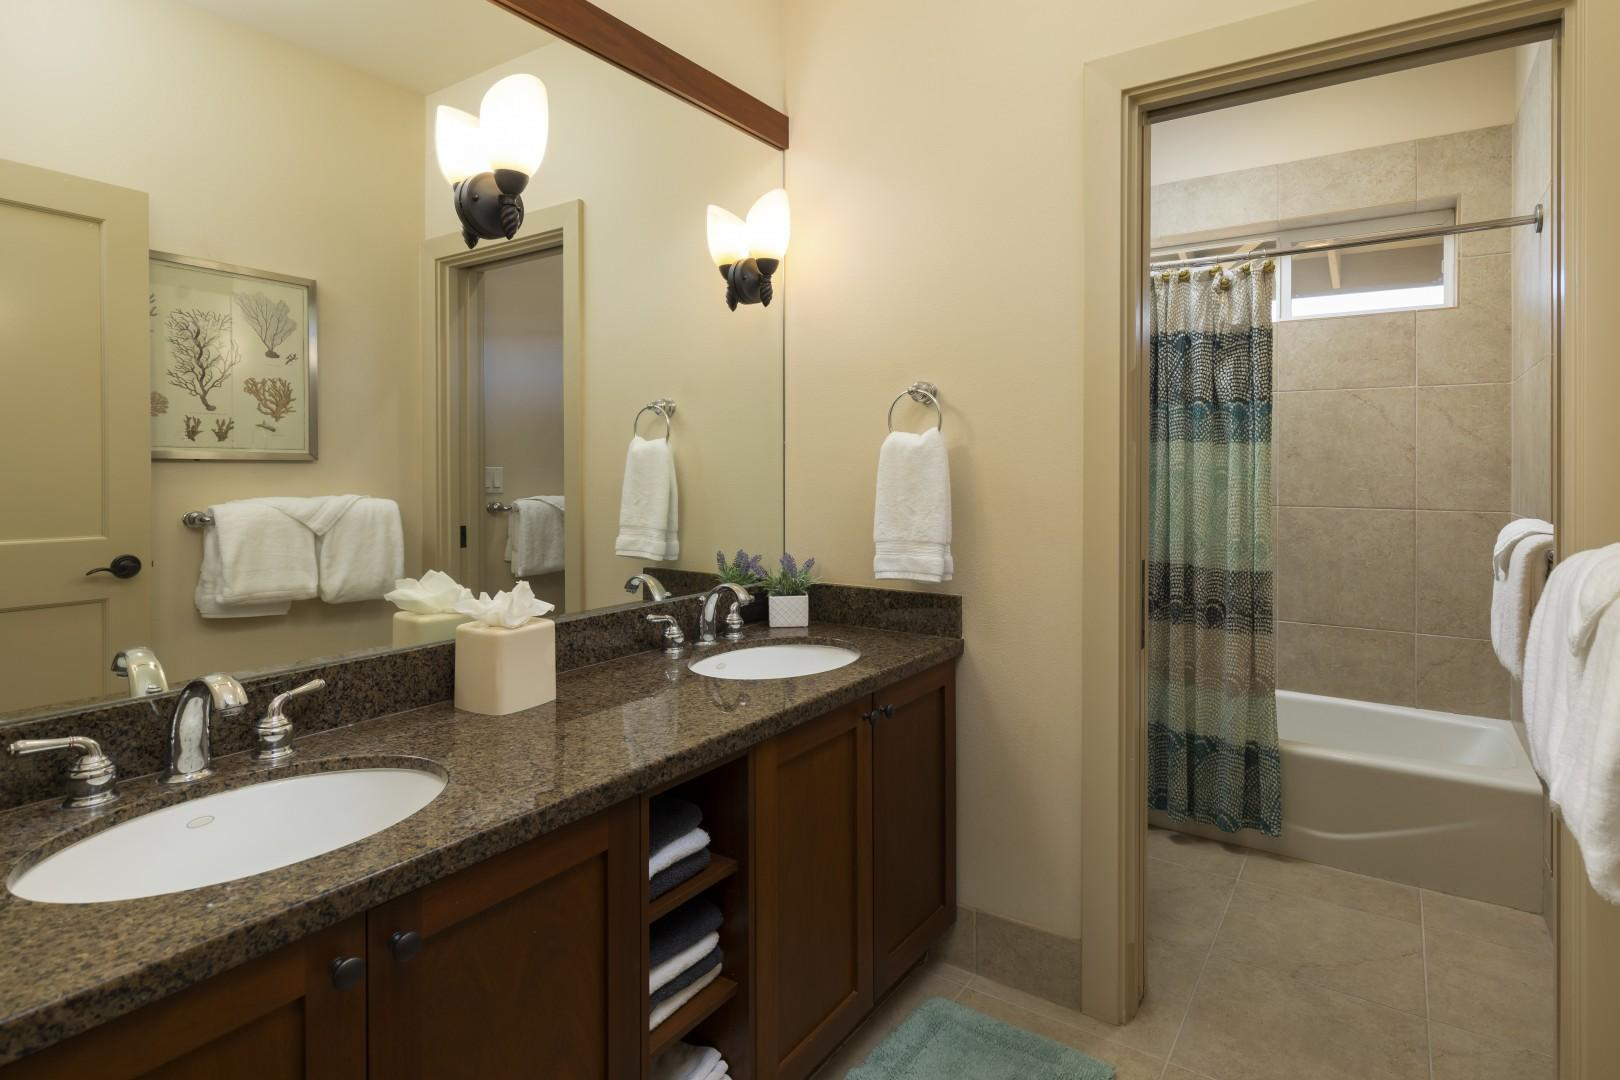 The guest suite bathroom offers dual vanities and a tub/shower combination.